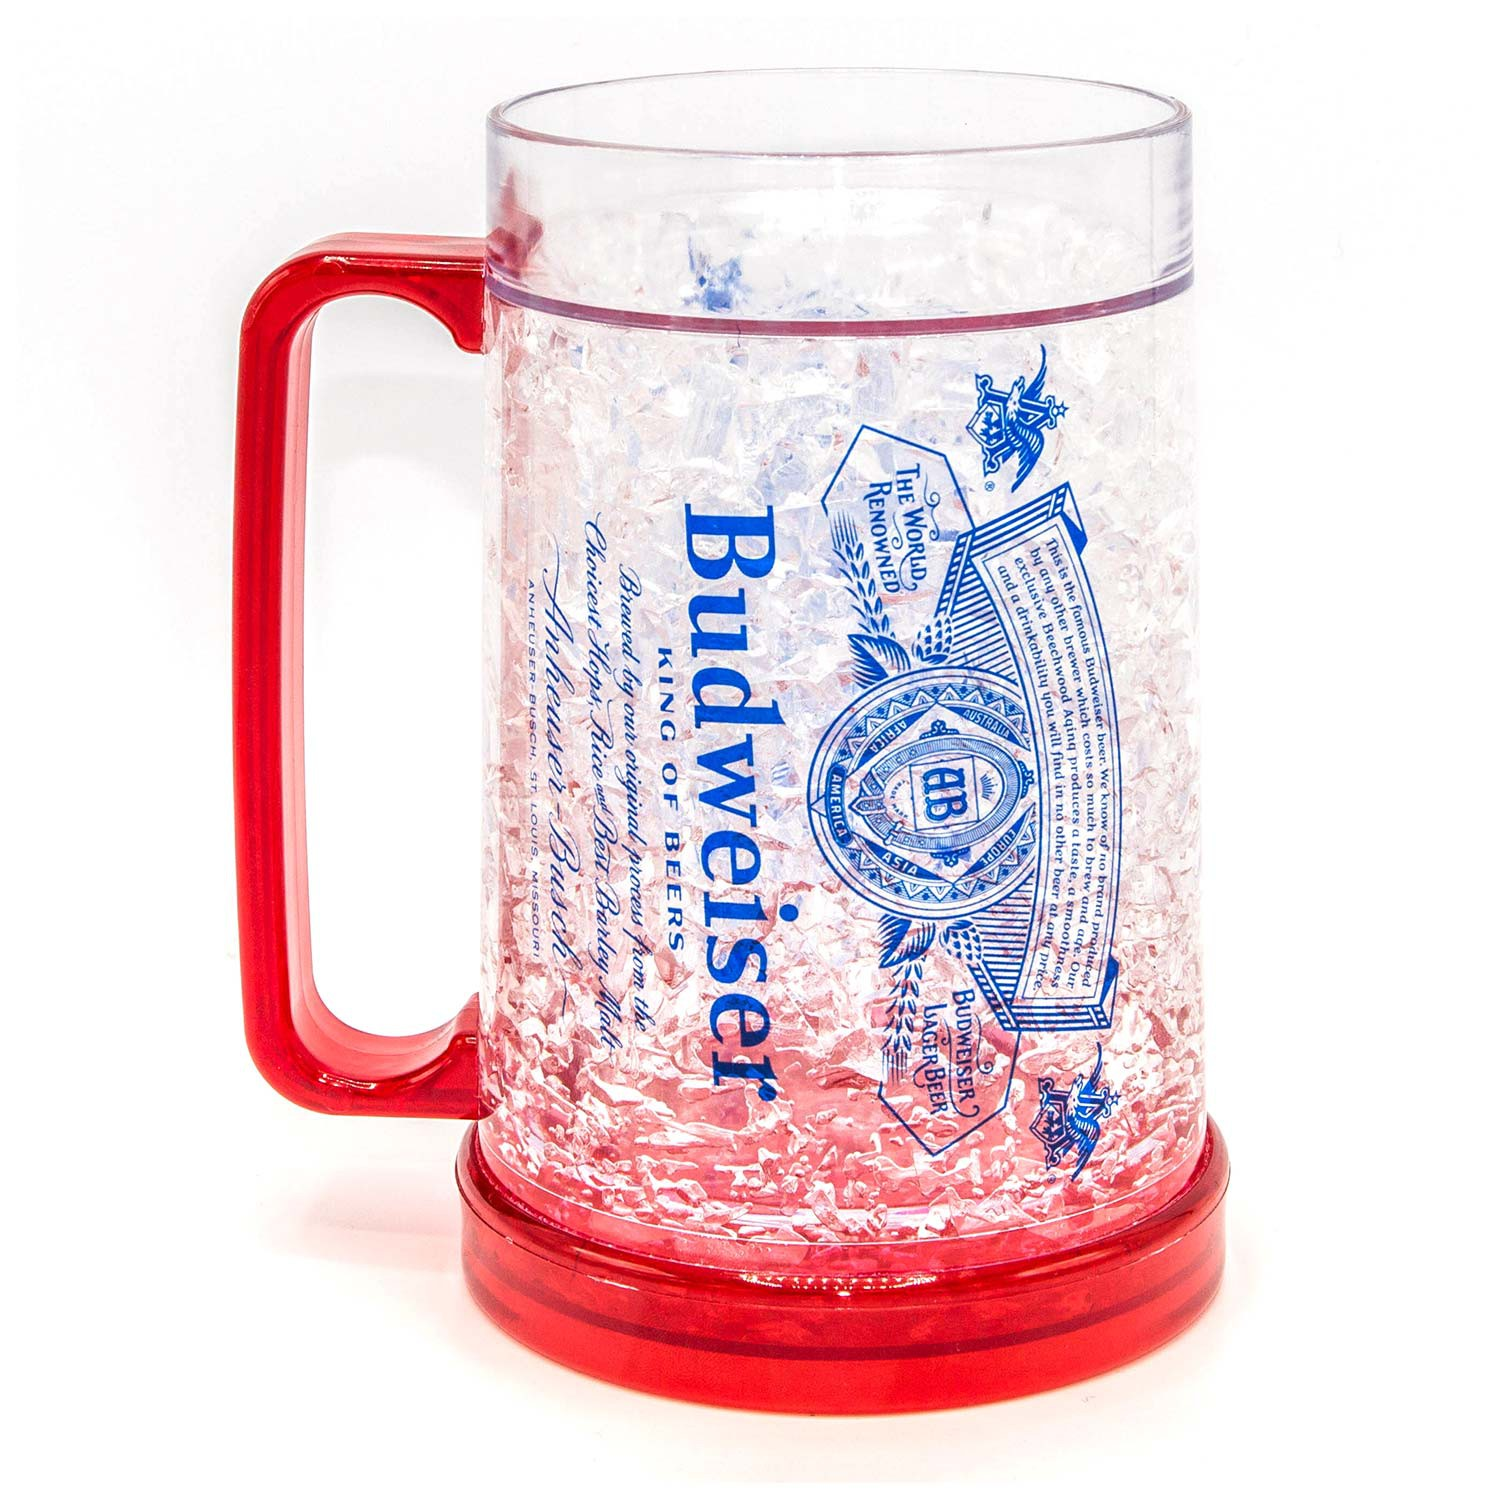 Budweiser Freezer Beer Stein 16 Ounces